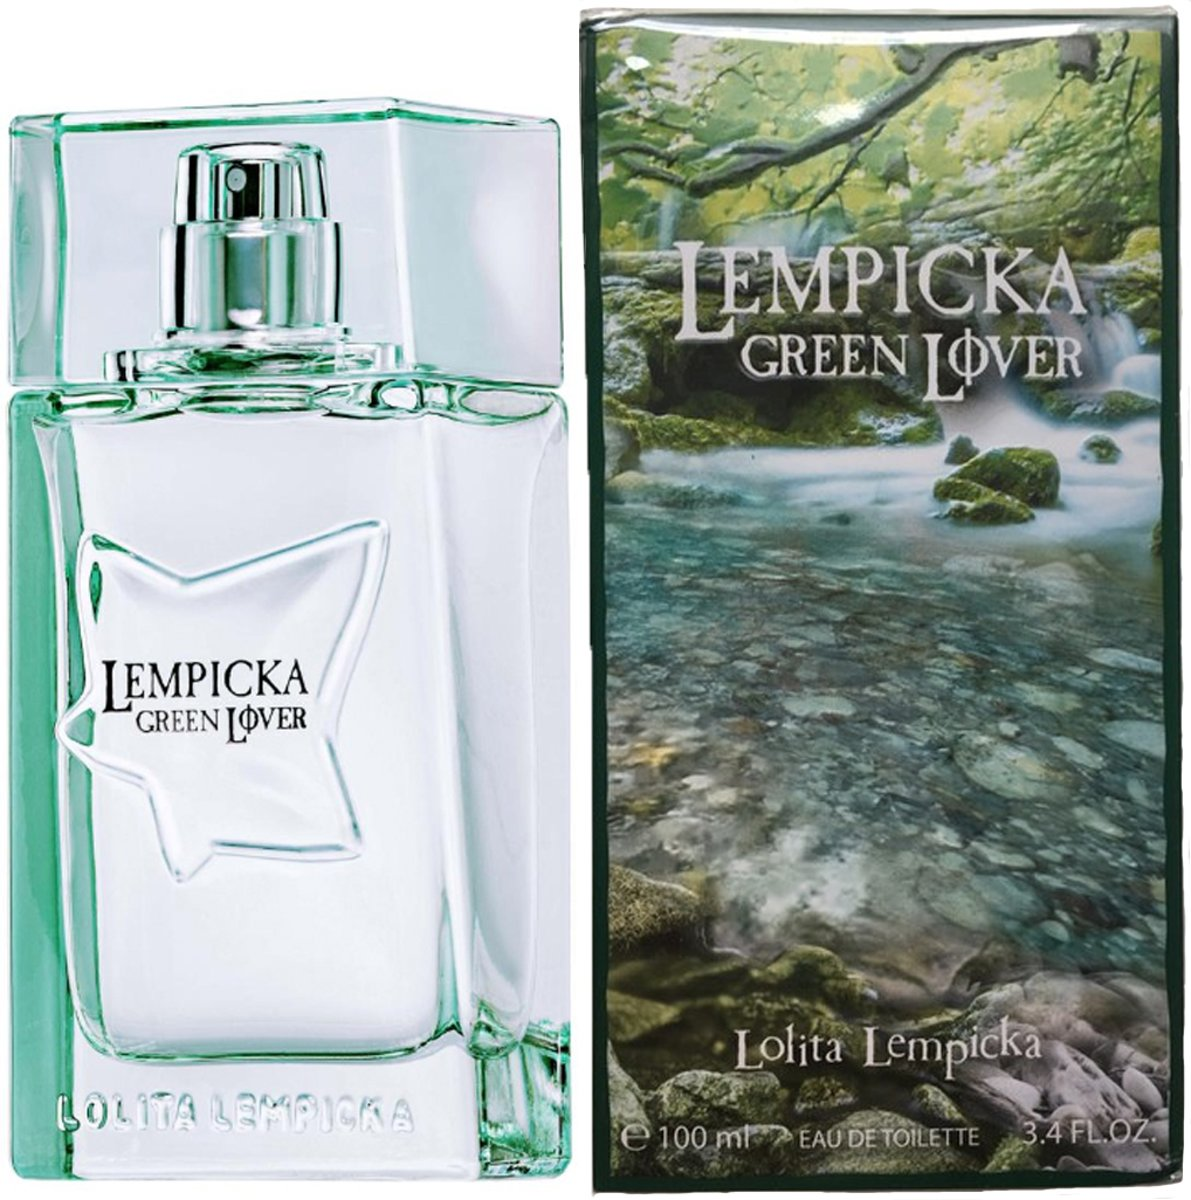 Lolita Lempicka Green Lover 100ml EDT Spray